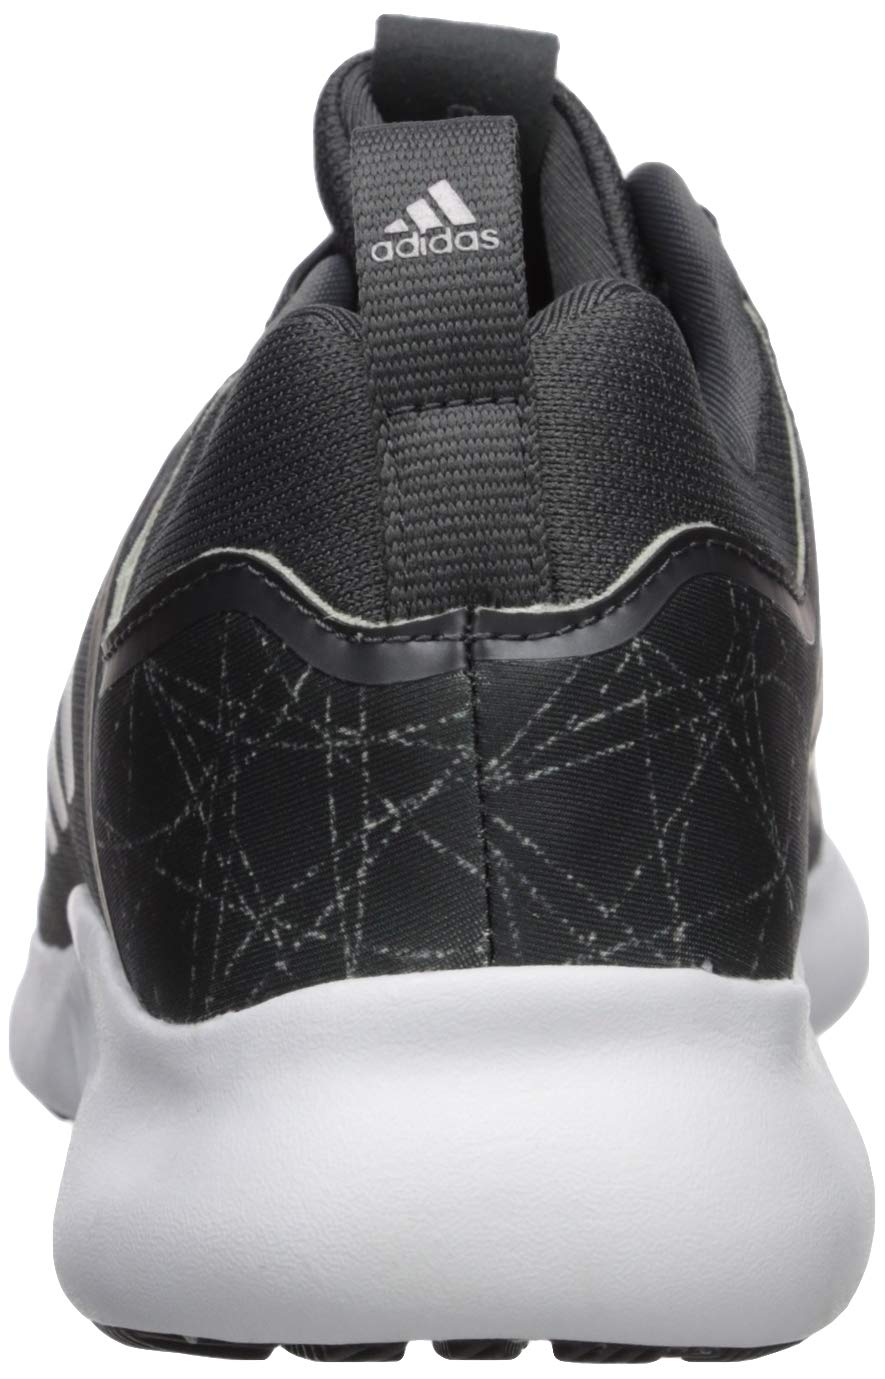 adidas Women's Edgebounce Grey/Black/White 5.5 M US by adidas (Image #2)